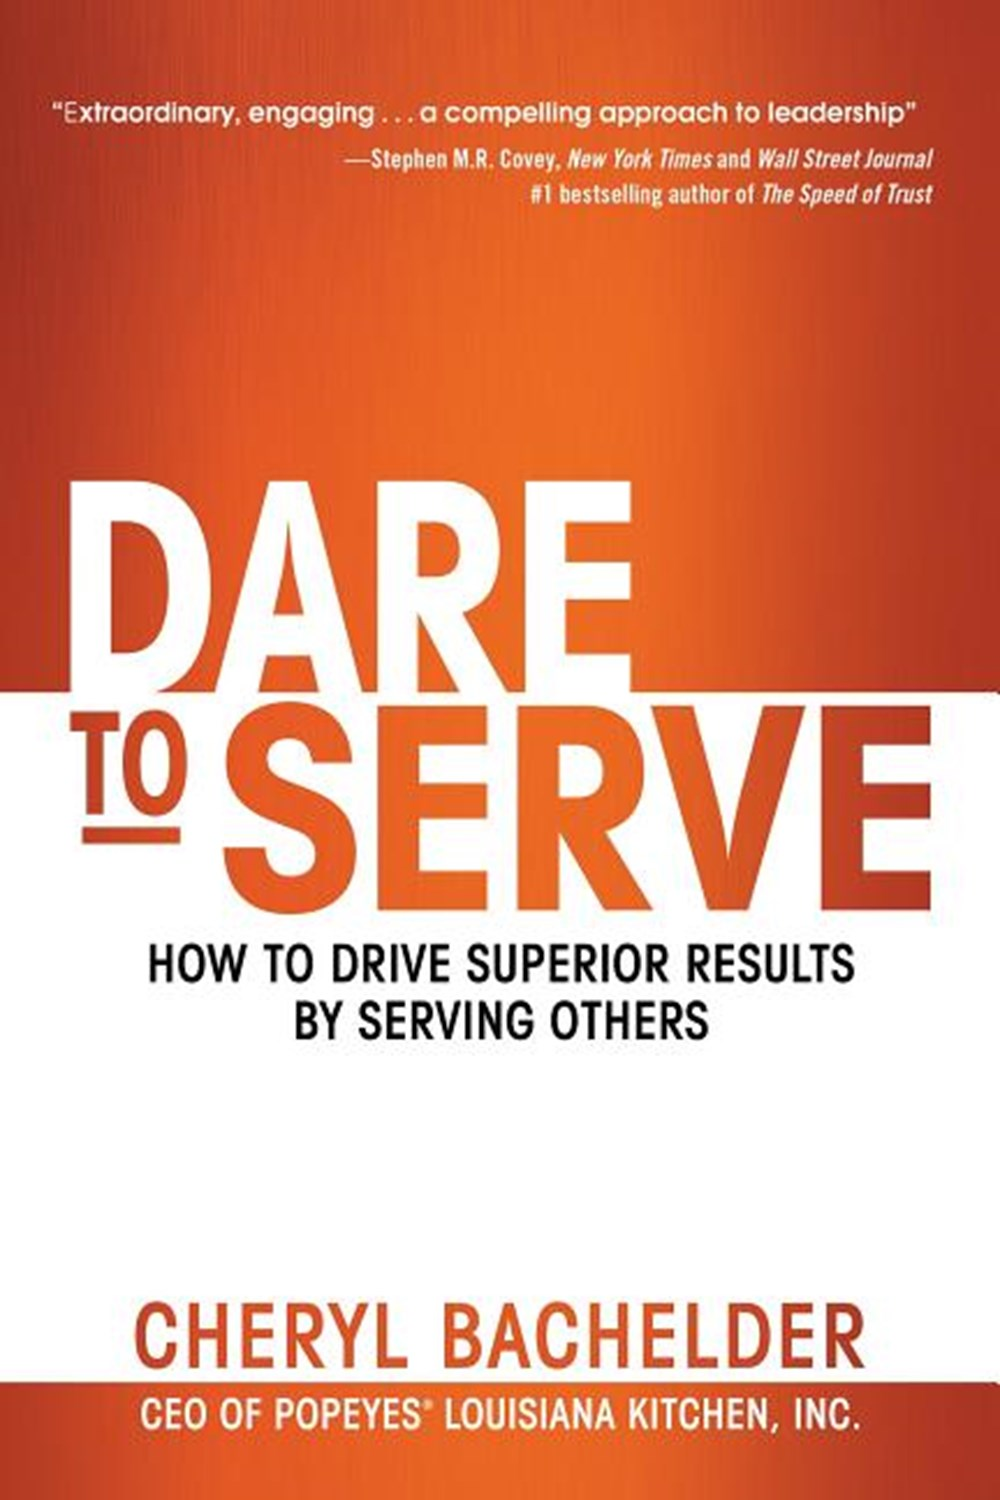 Dare to Serve How to Drive Superior Results by Serving Others